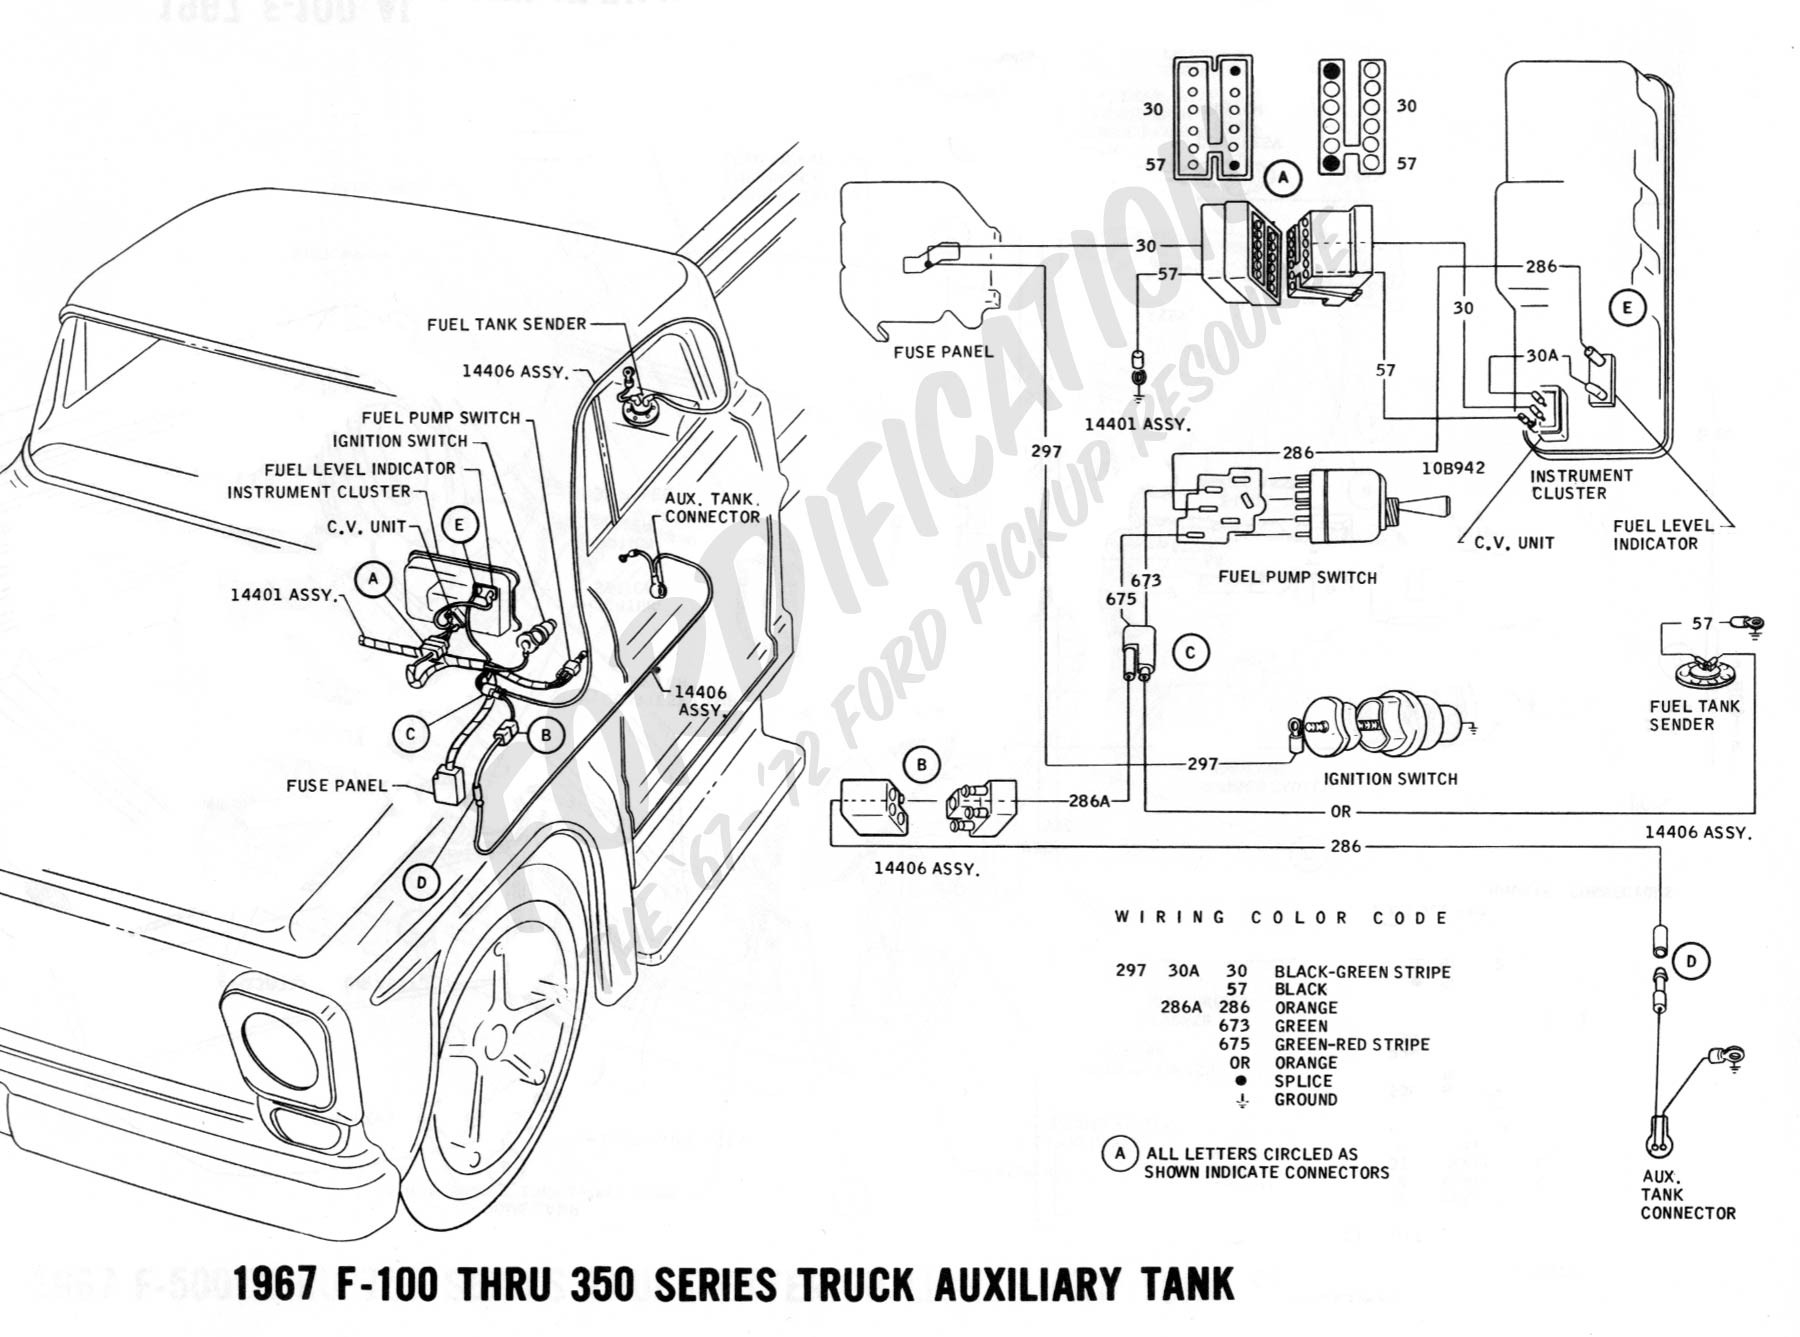 Ford Ranger Solenoid Wiring Diagram For 1989 Library 1988 1986 F150 Engine 86 As Well F 150